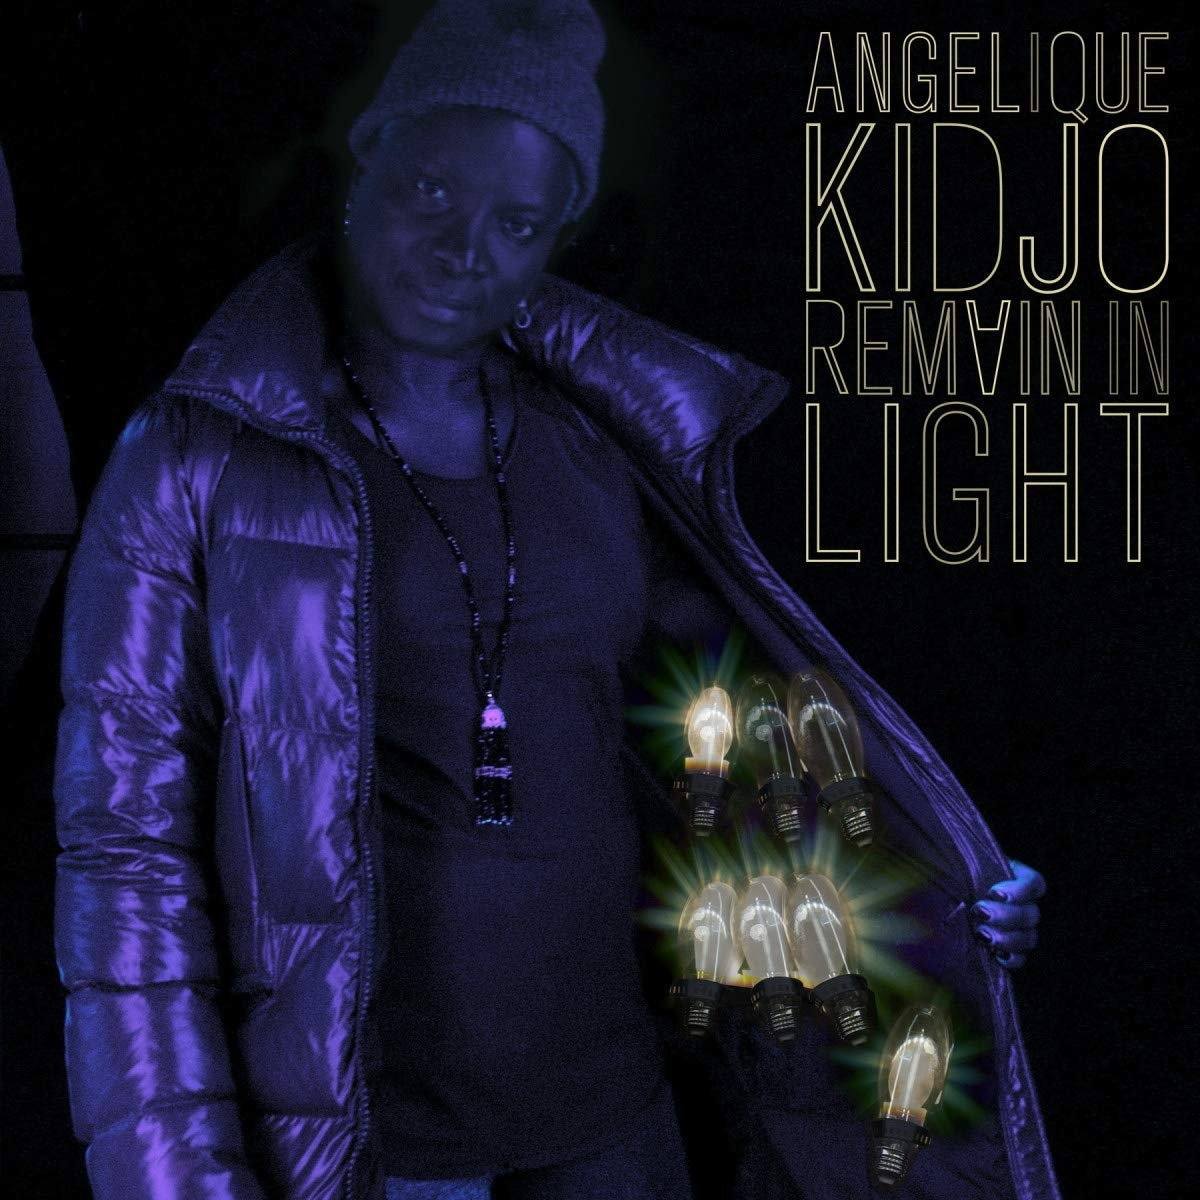 world 10 18 A Kidjo RemainInLight